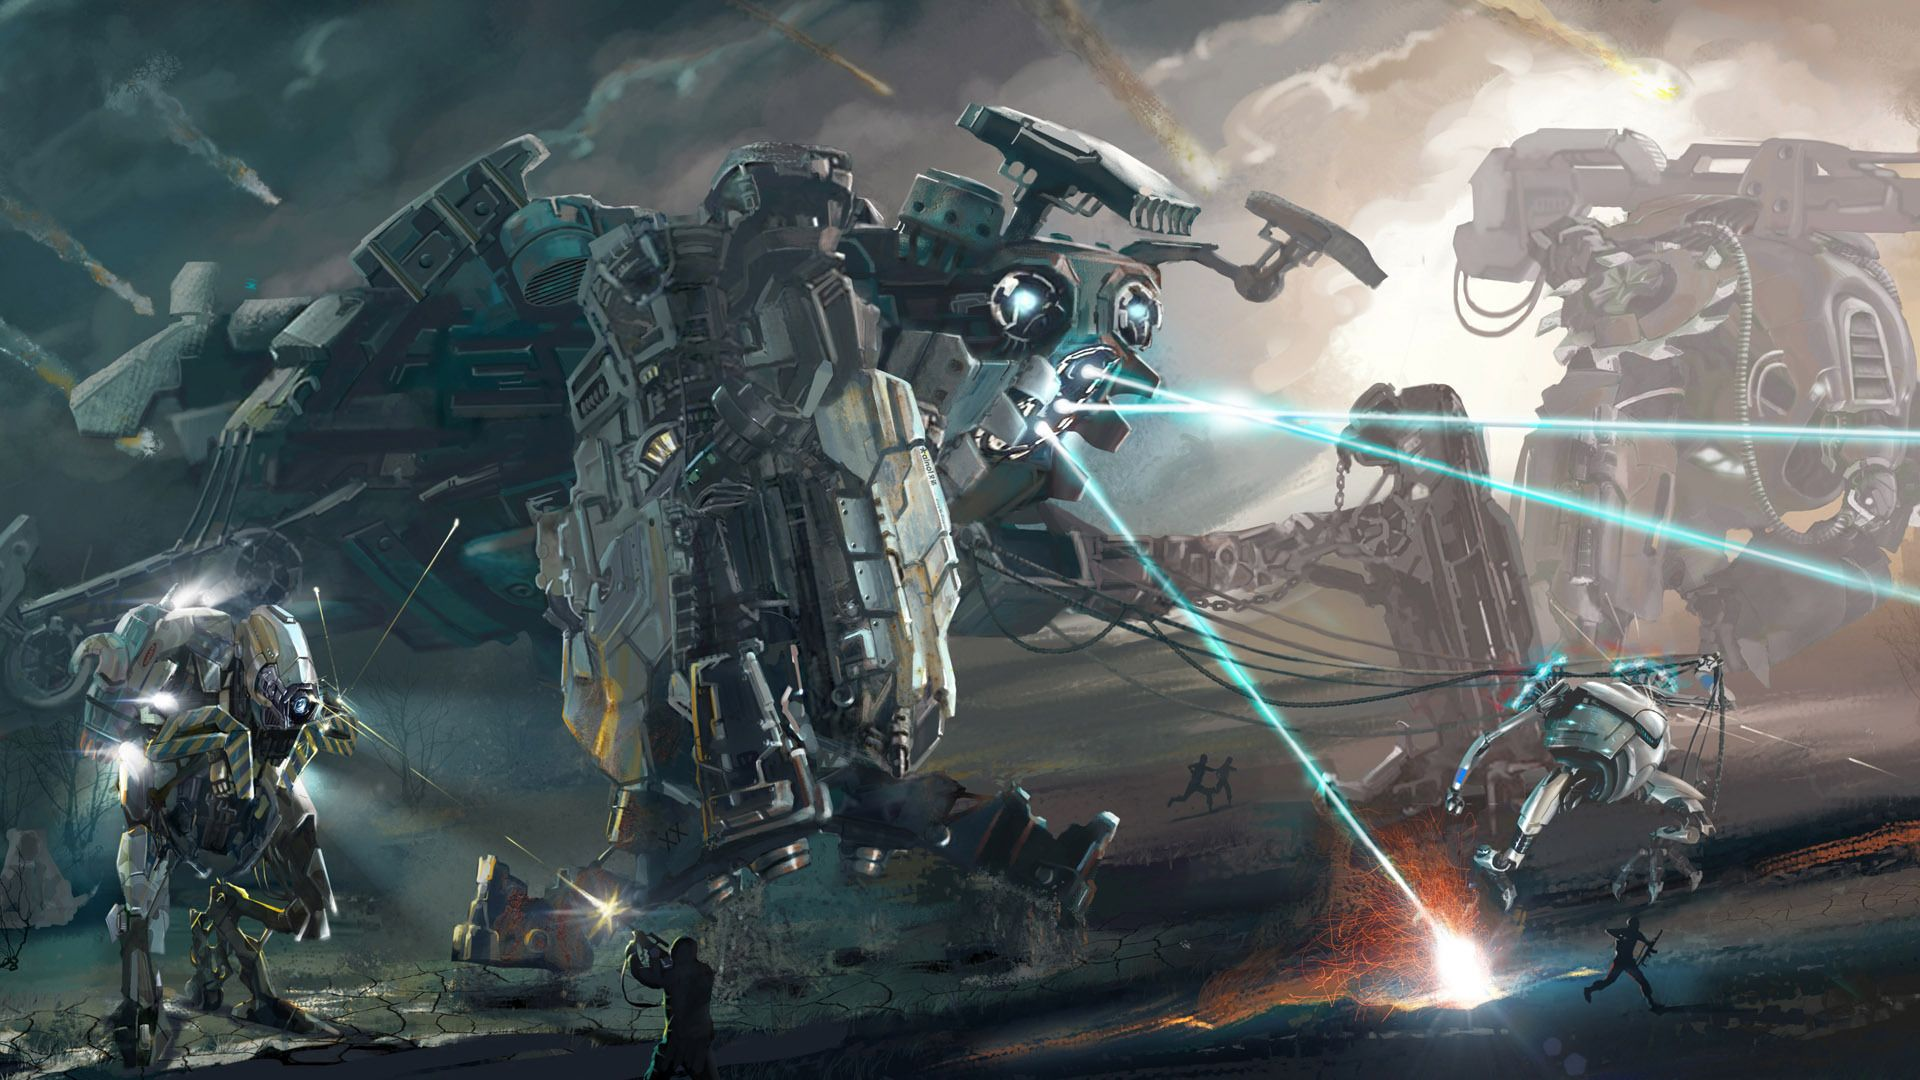 cool futuristic battlefield 17519 Check more at http://www.finewallpapers.eu/pin/23188/